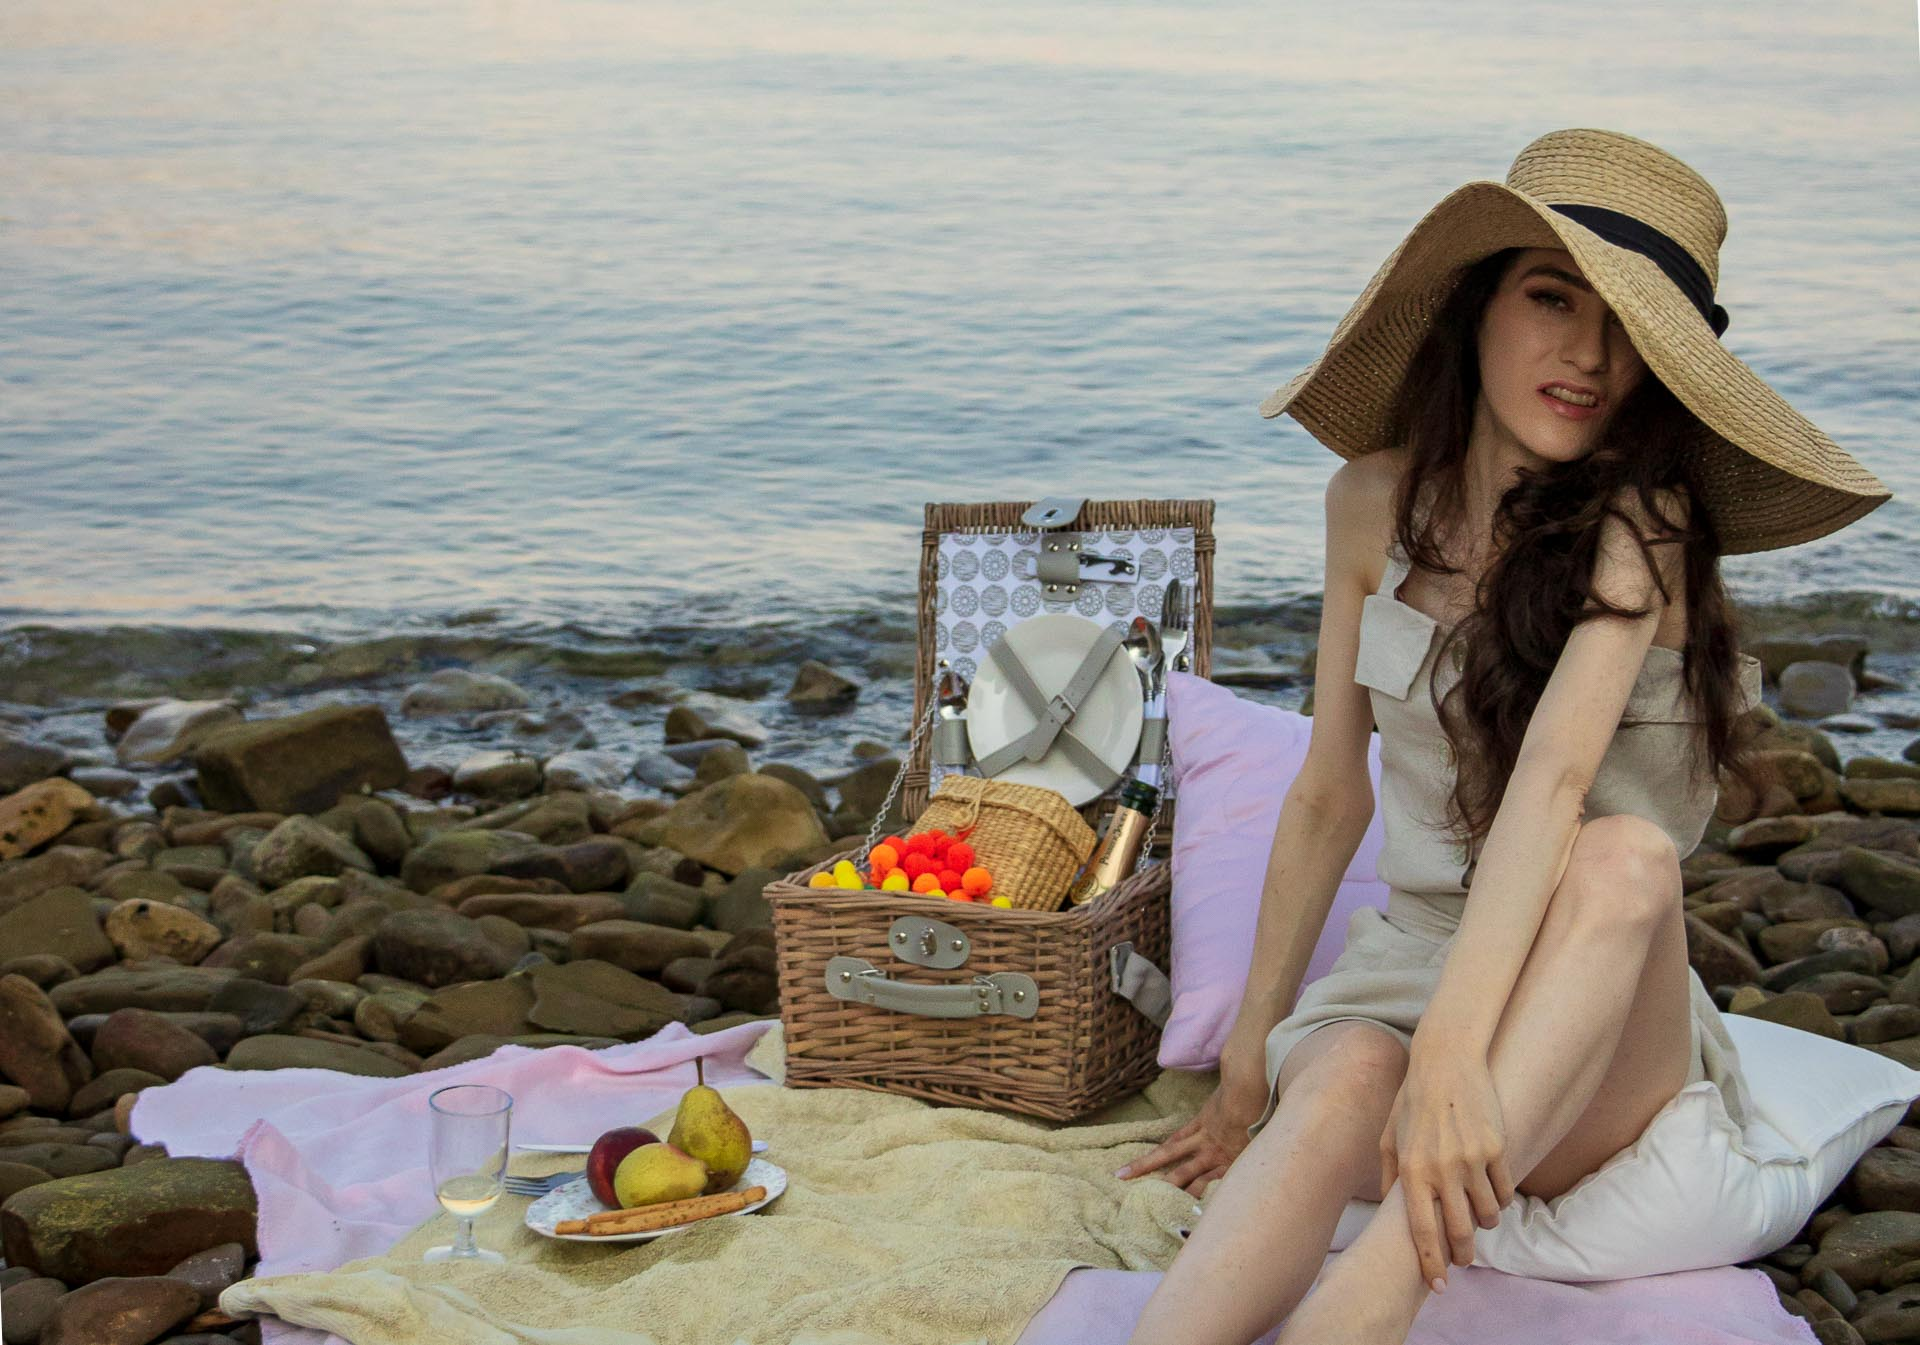 Slovenian Fashion Blogger Veronika Lipar of Brunette from Wall dressed in beige linen crop top, paper bag linen shorts, luxe pool slides, large straw hat, Nannacay basket bag while having beach picnic